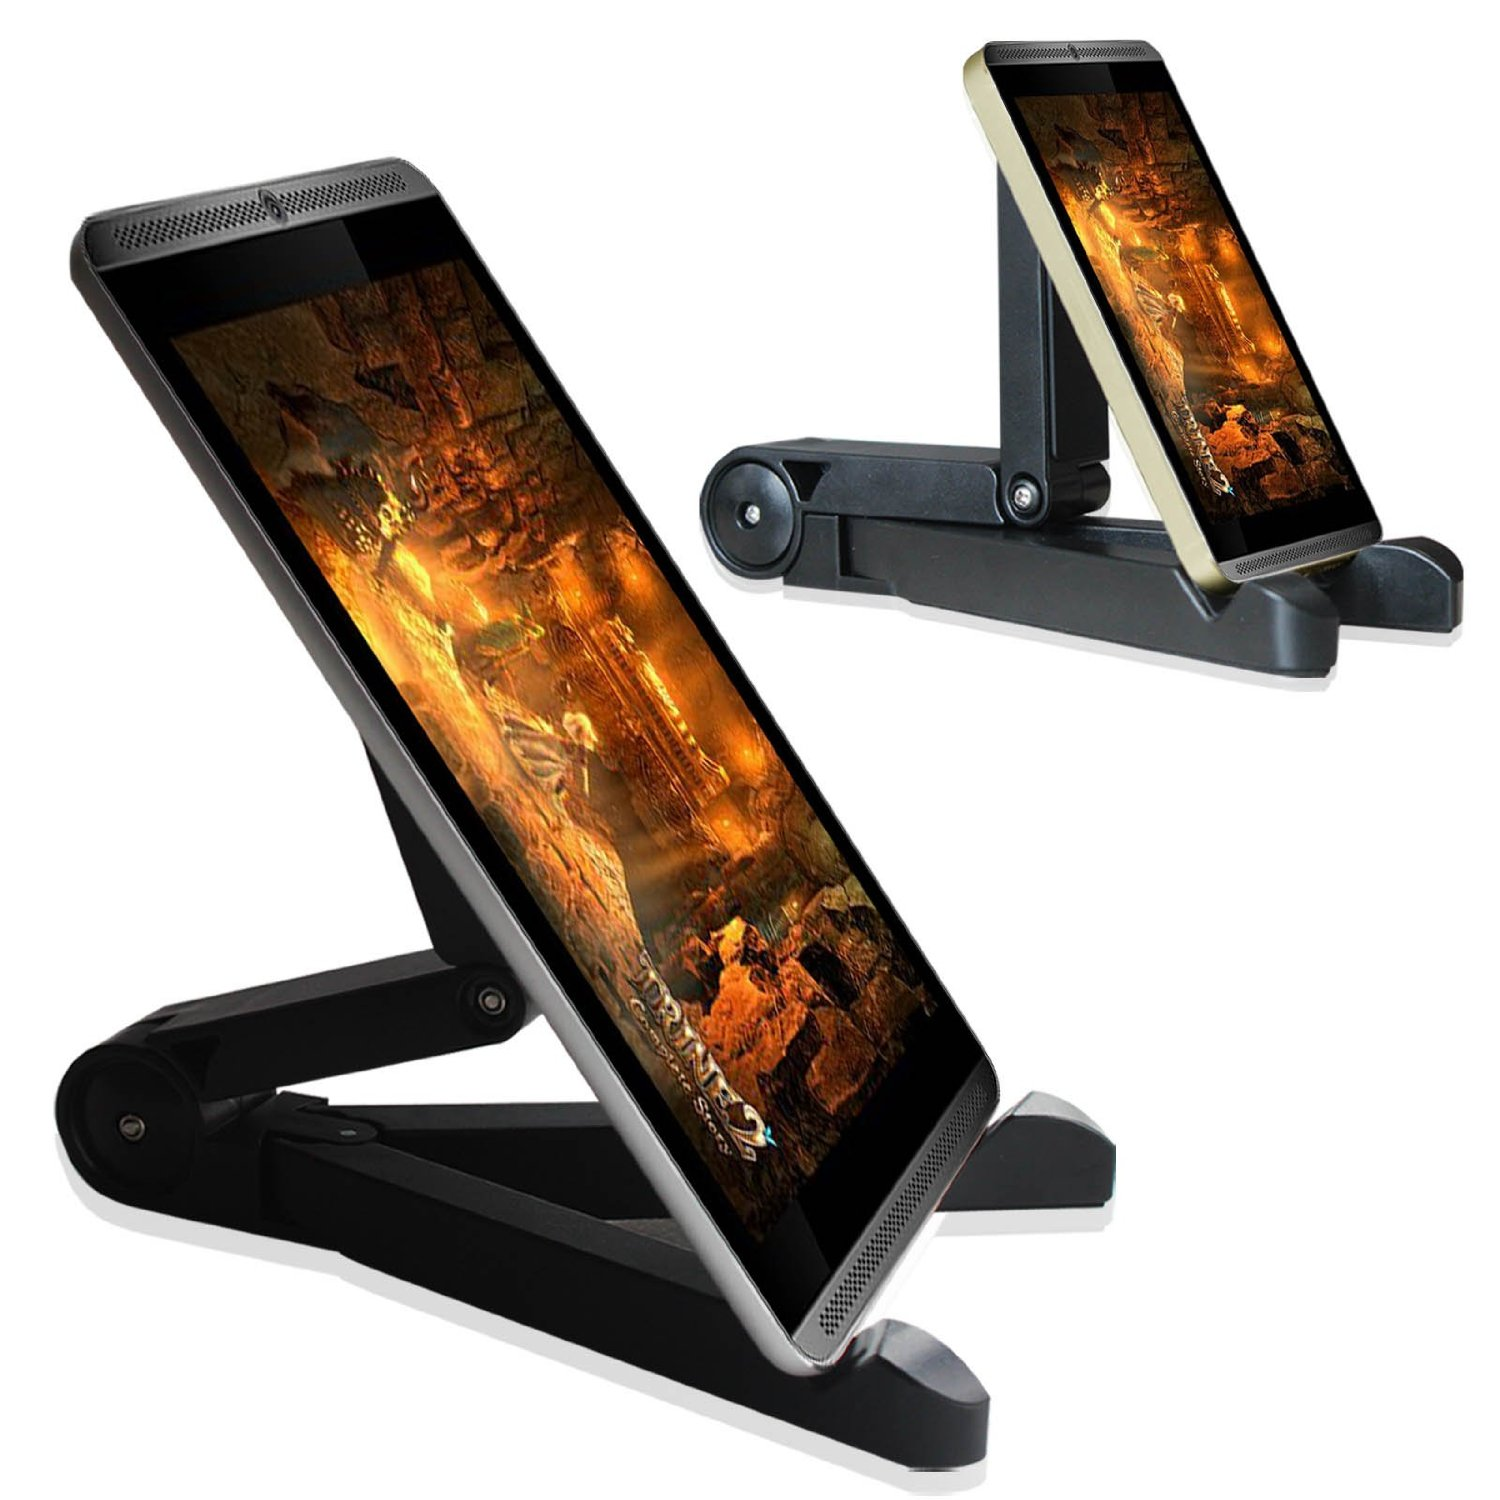 Fintie Multi Angle Travel Stand for All 7-12 inch Tablets, E-readers and Smartphones, fits  Nextbook, Apple iPad etc.